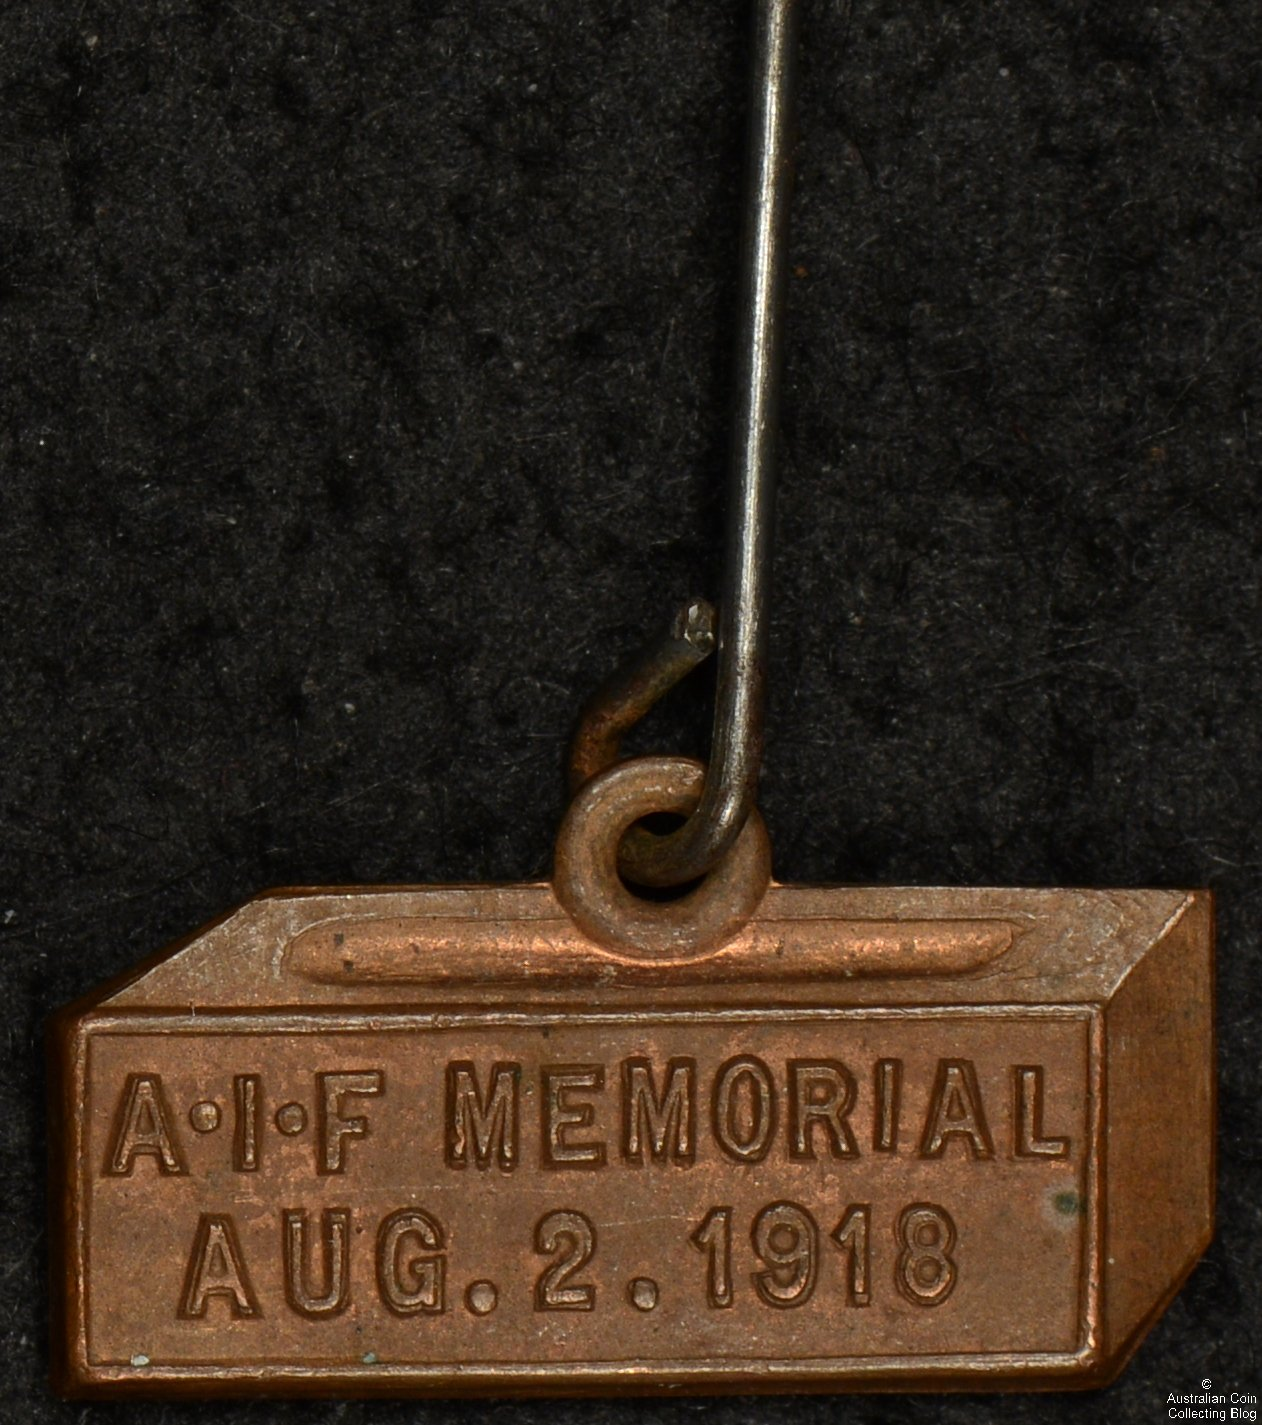 AIF Memorial Aug.2.1918 Pin